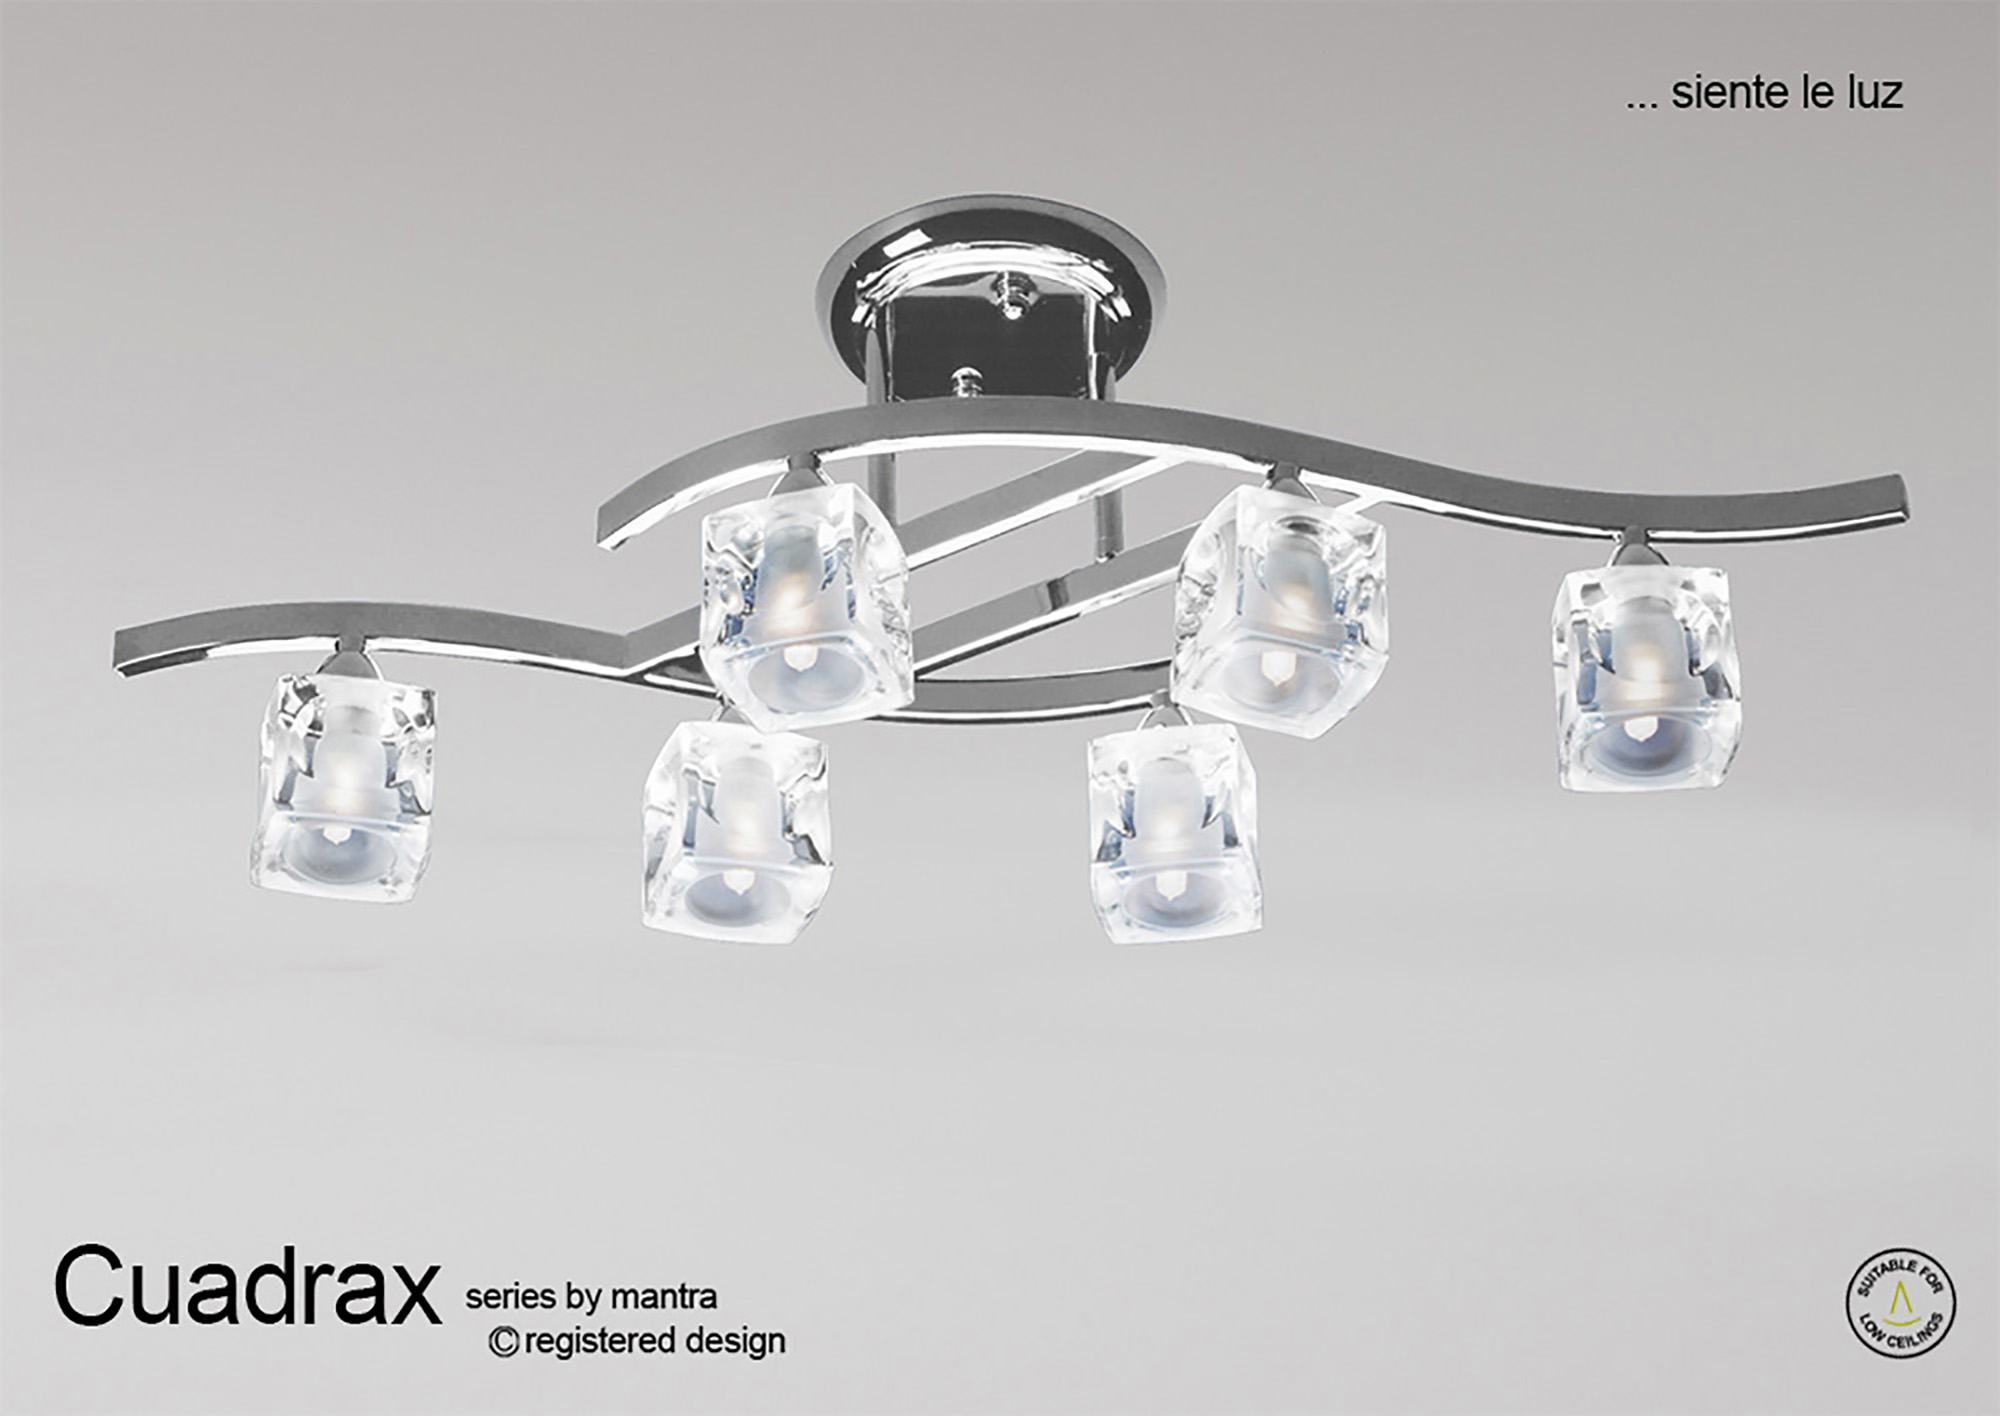 Cuadrax SN Ceiling Lights Mantra Contemporary Ceiling Lights